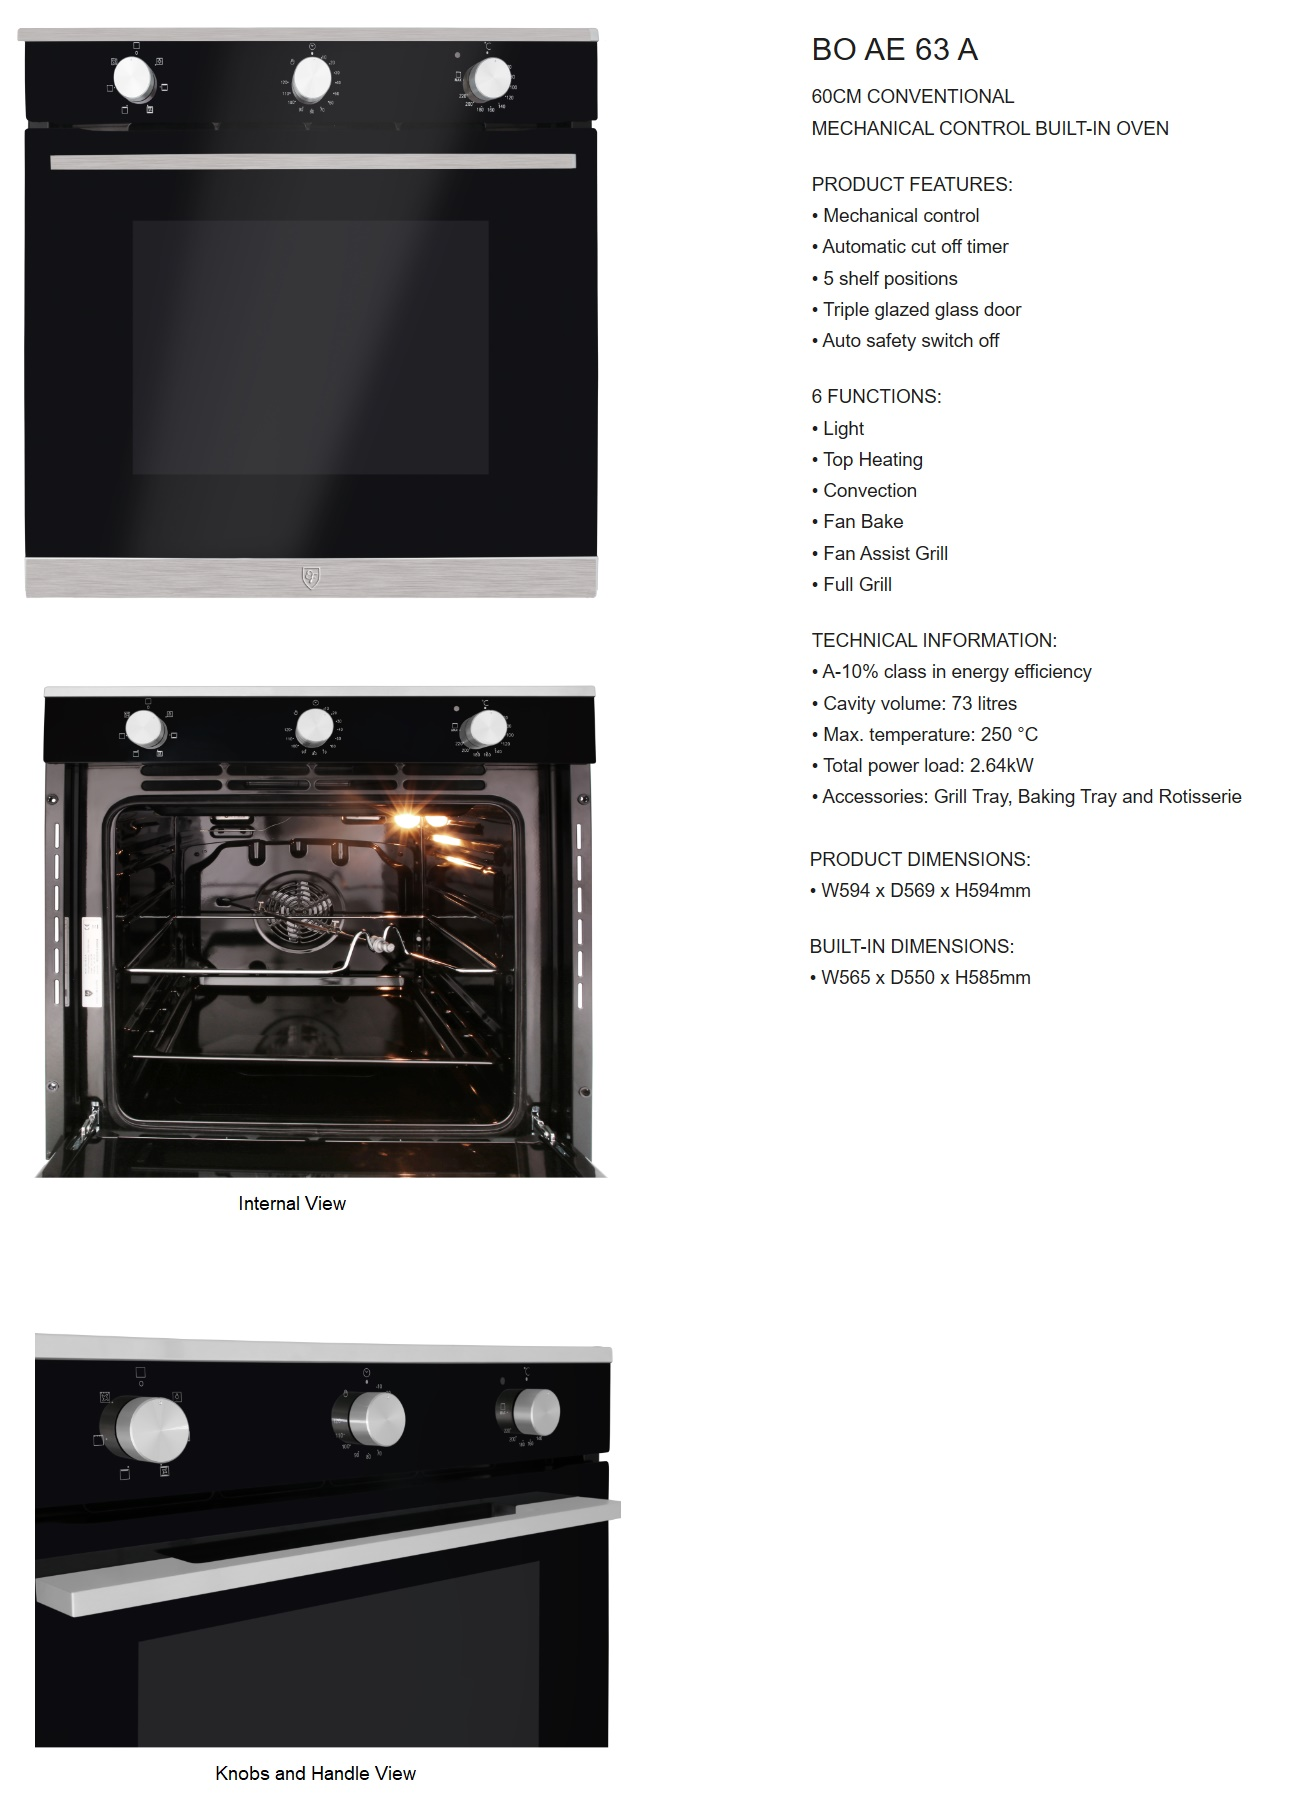 Ef Built In Oven Bo Ae 63a Sg Appliances